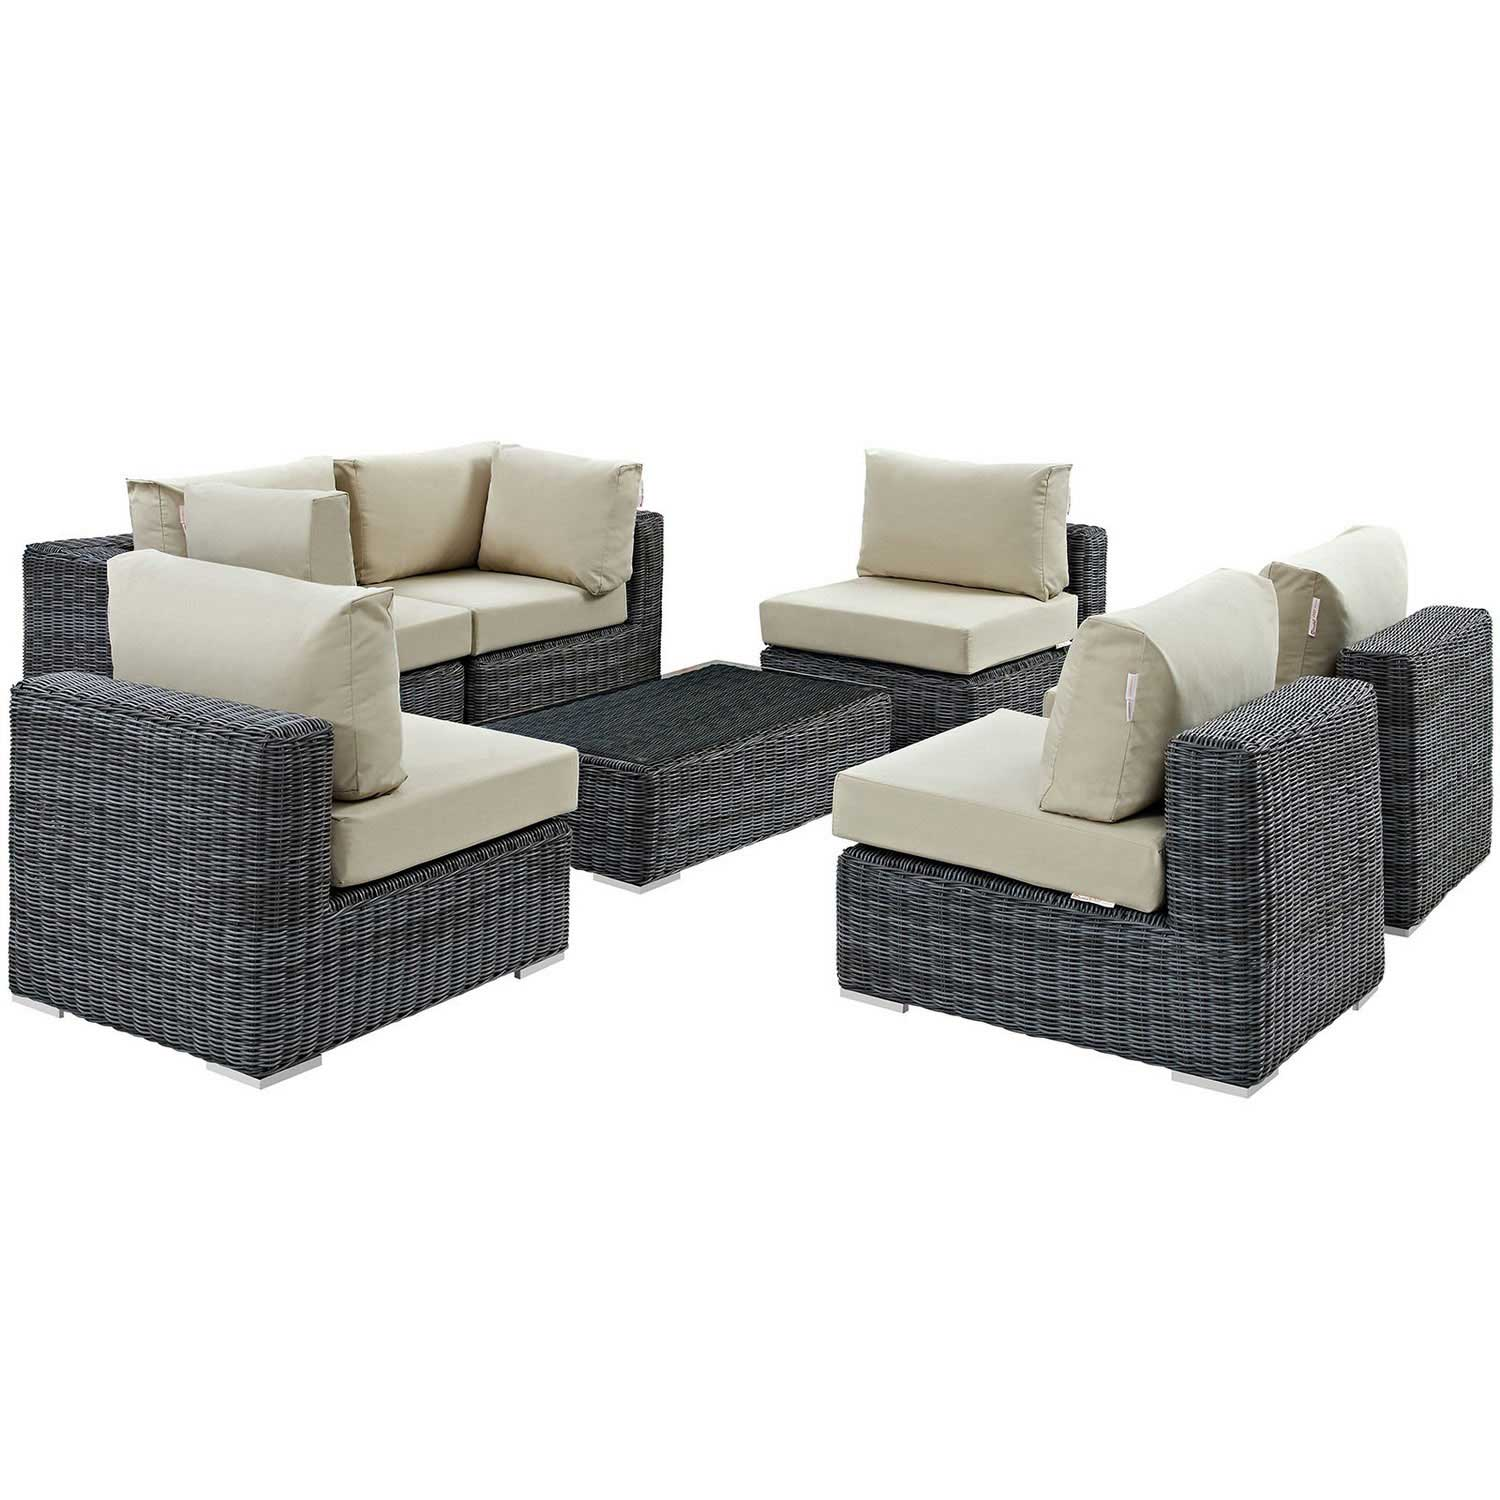 Modway Summon 7 Piece Outdoor Patio Sunbrella Sectional Set - Canvas Antique Beige